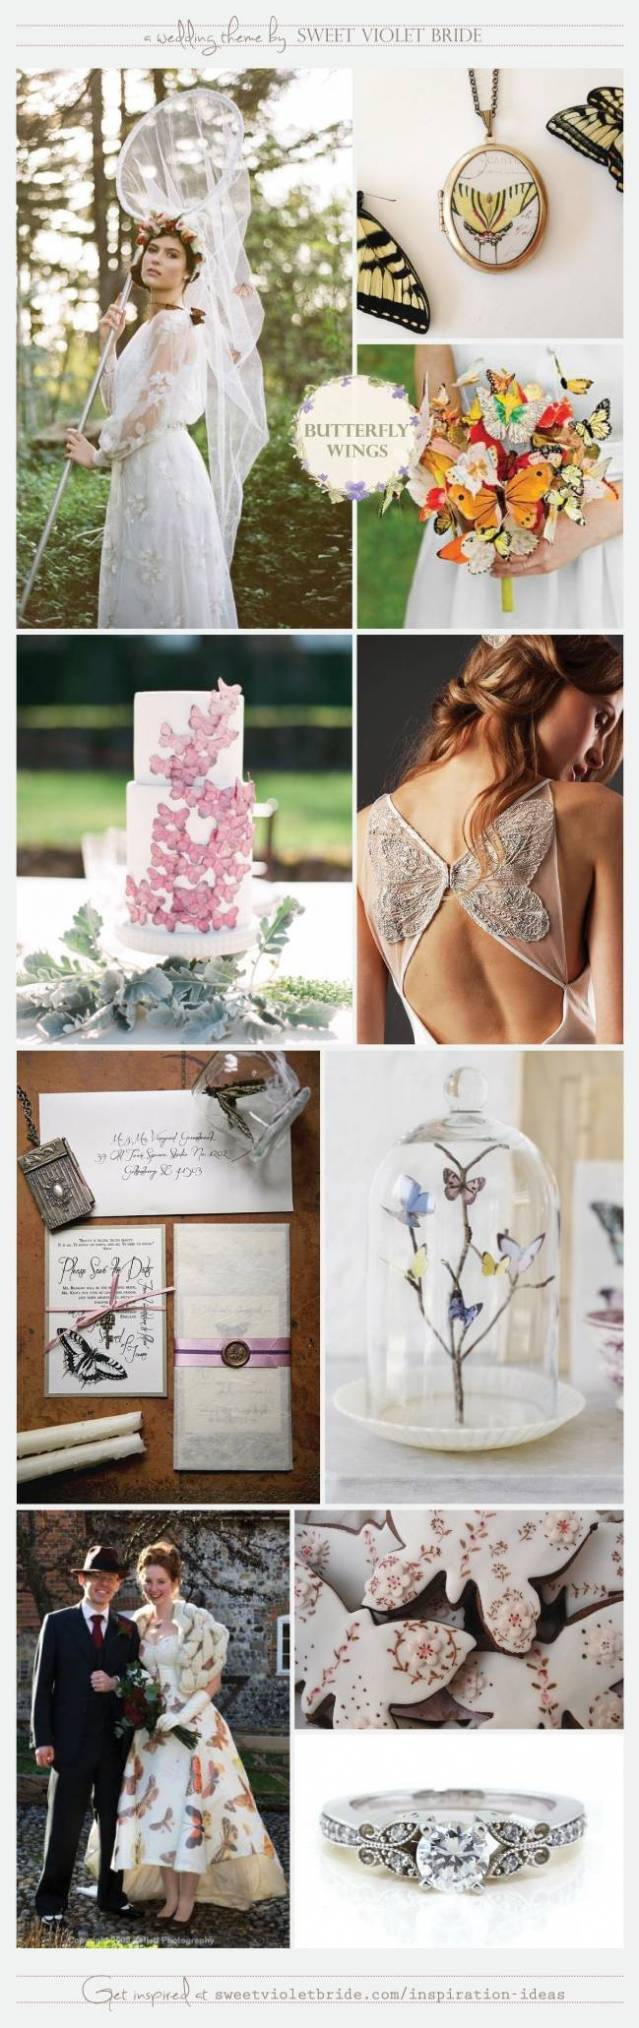 Wedding Inspiration Board #24: Butterfly Wings